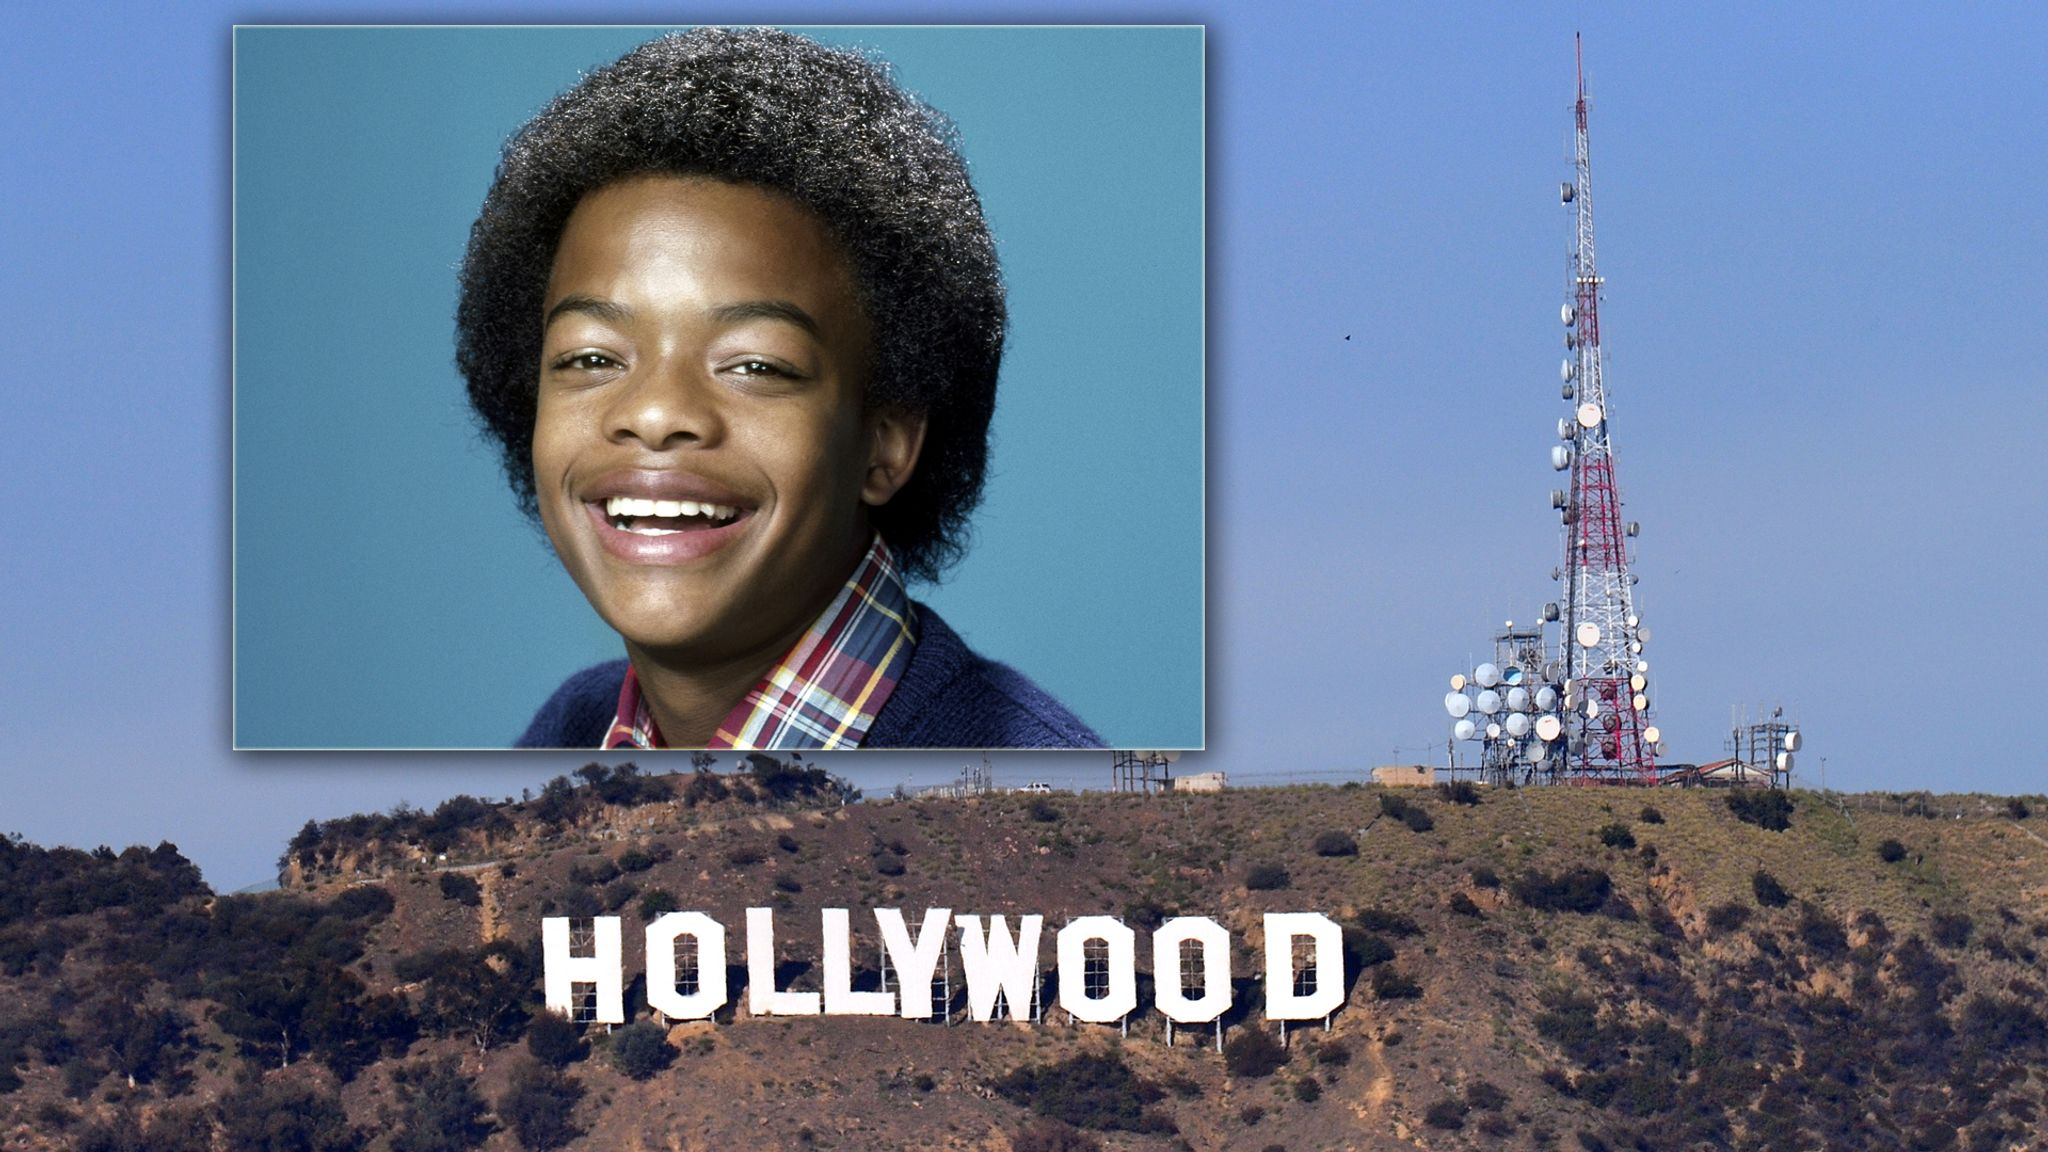 Former child actors reveal sexual abuse in Hollywood | Ents